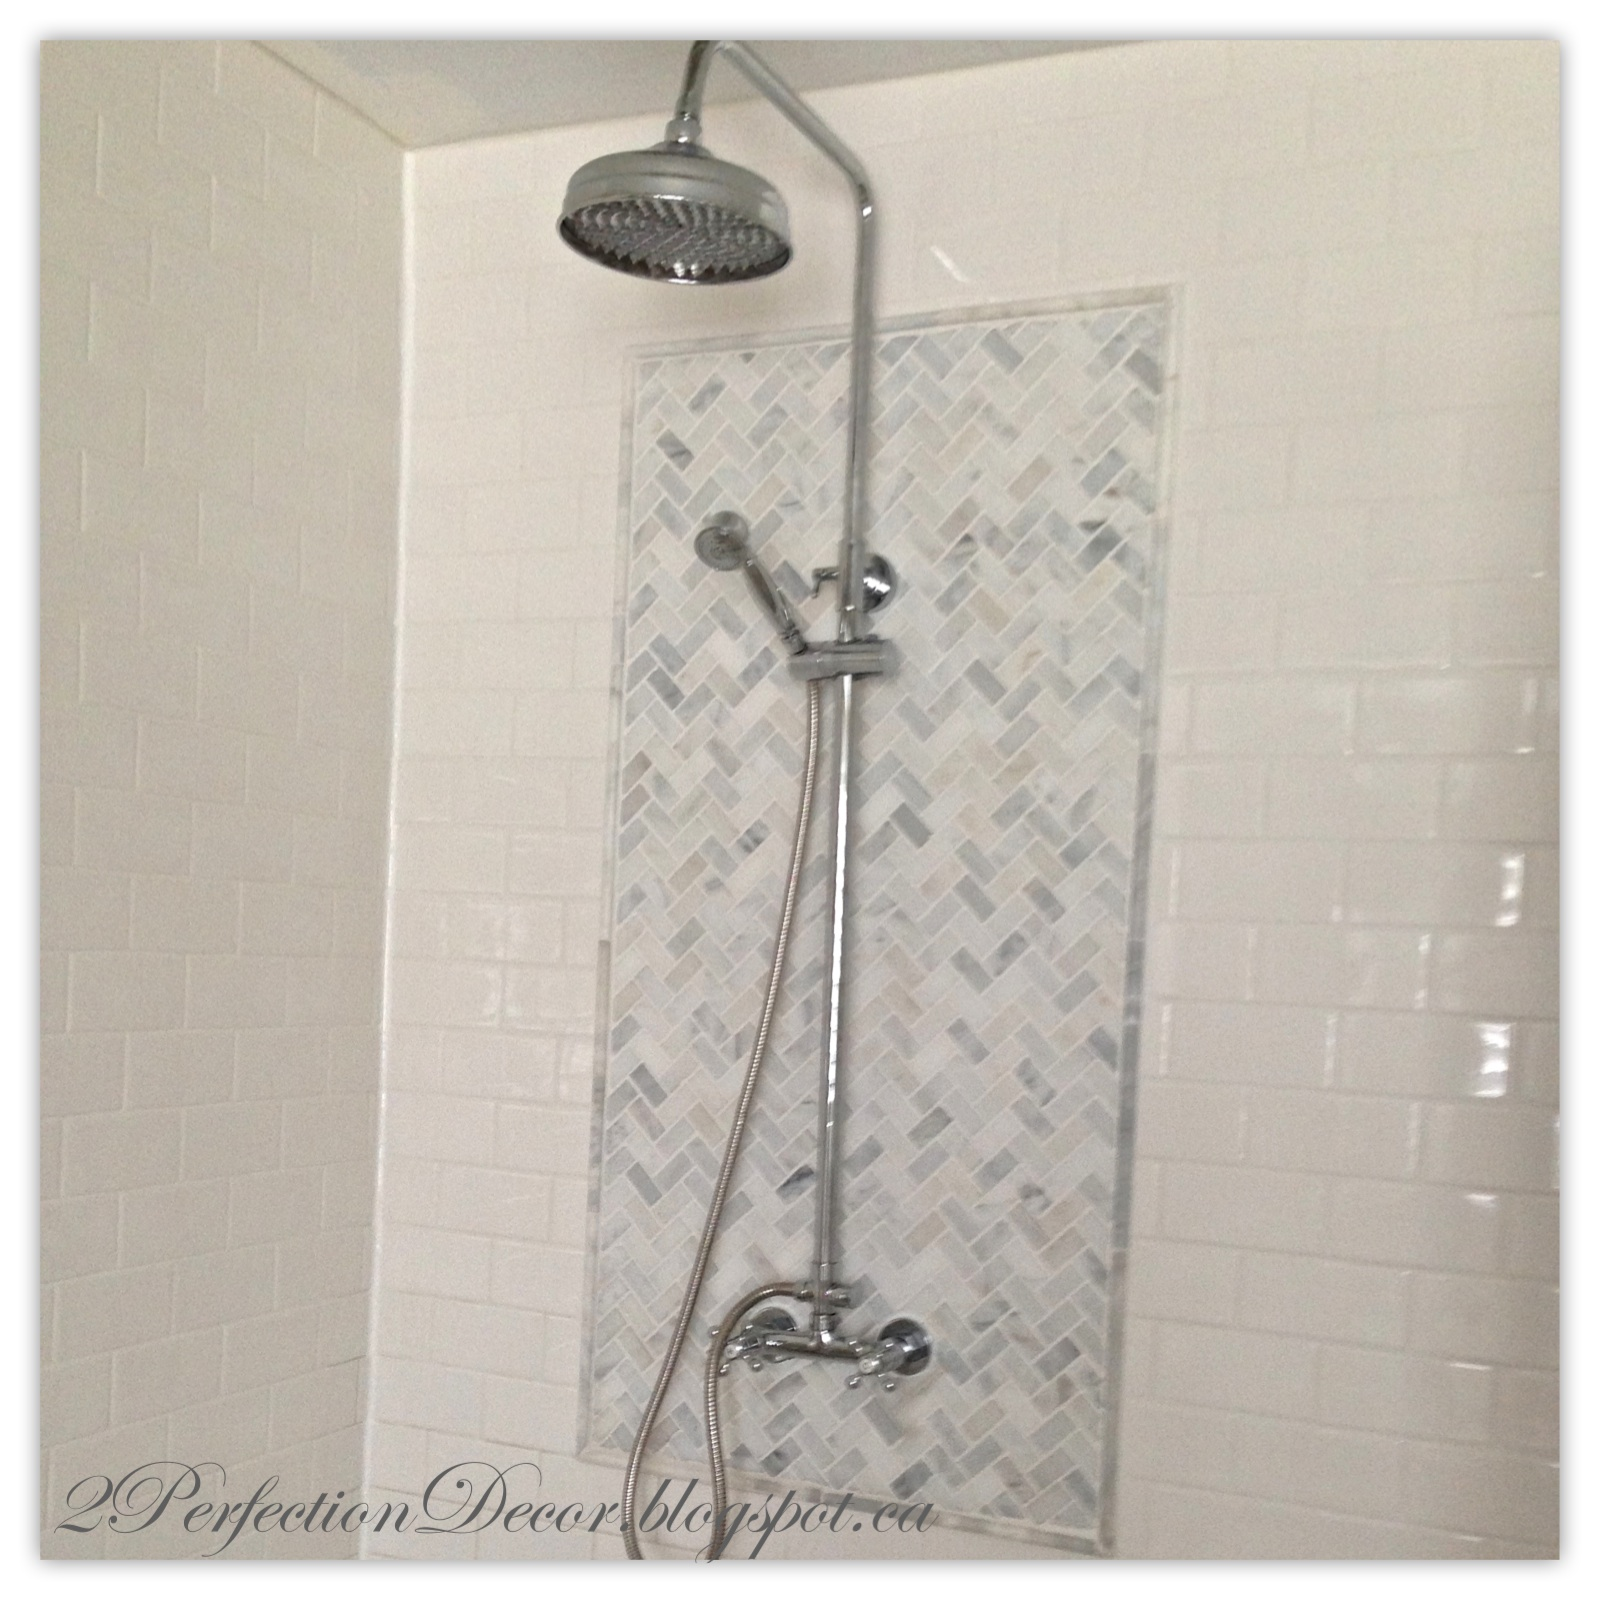 At first we were just going to keep the original shower light   crazy idea  right    But once we installed new shower faucet they were practically  touching. 2Perfection Decor  Master Ensuite Shower Reveal